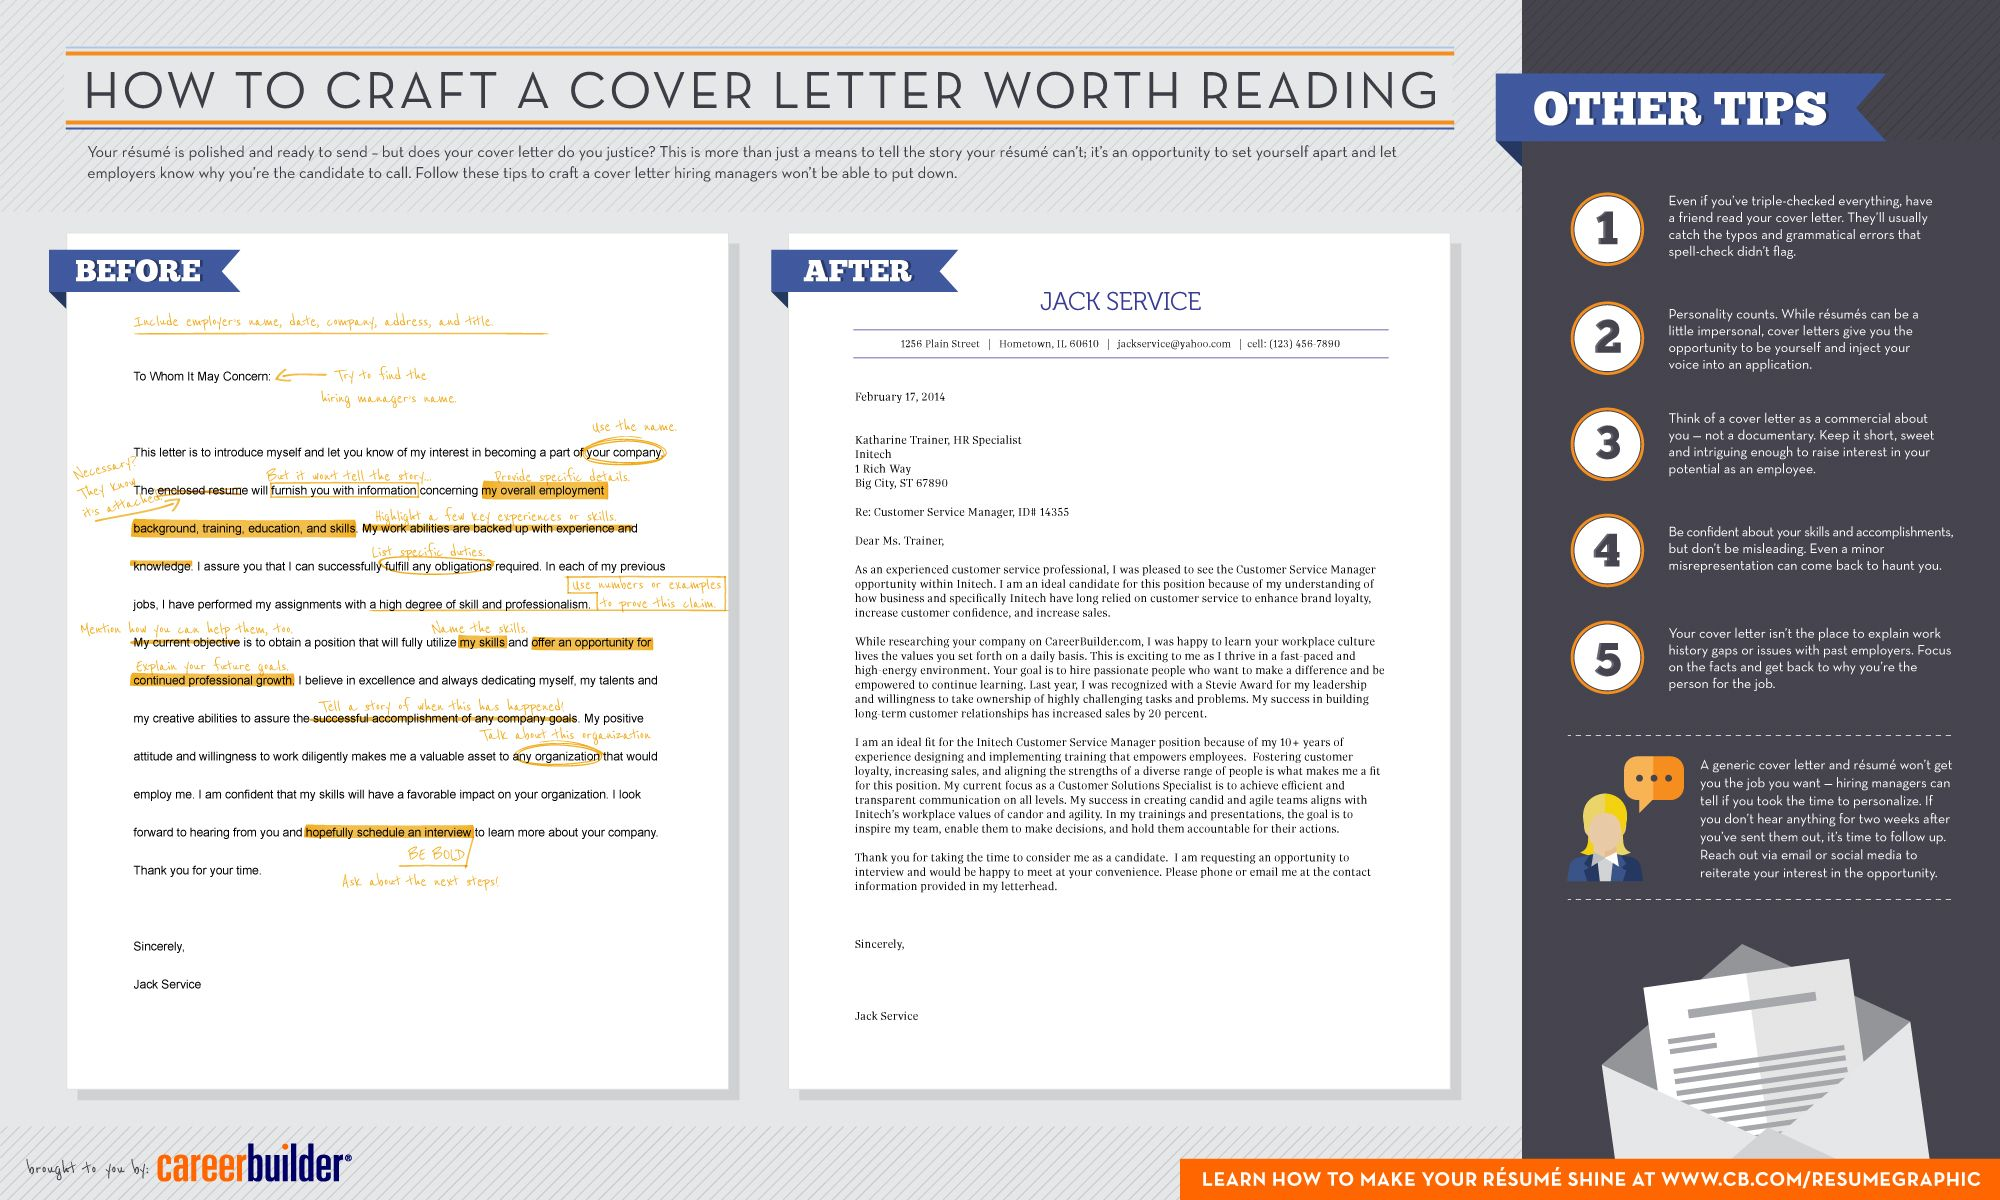 Cover Letter Advice Classy Cb's Newest Infographic How To Craft A Cover Letter Worth Reading Design Decoration